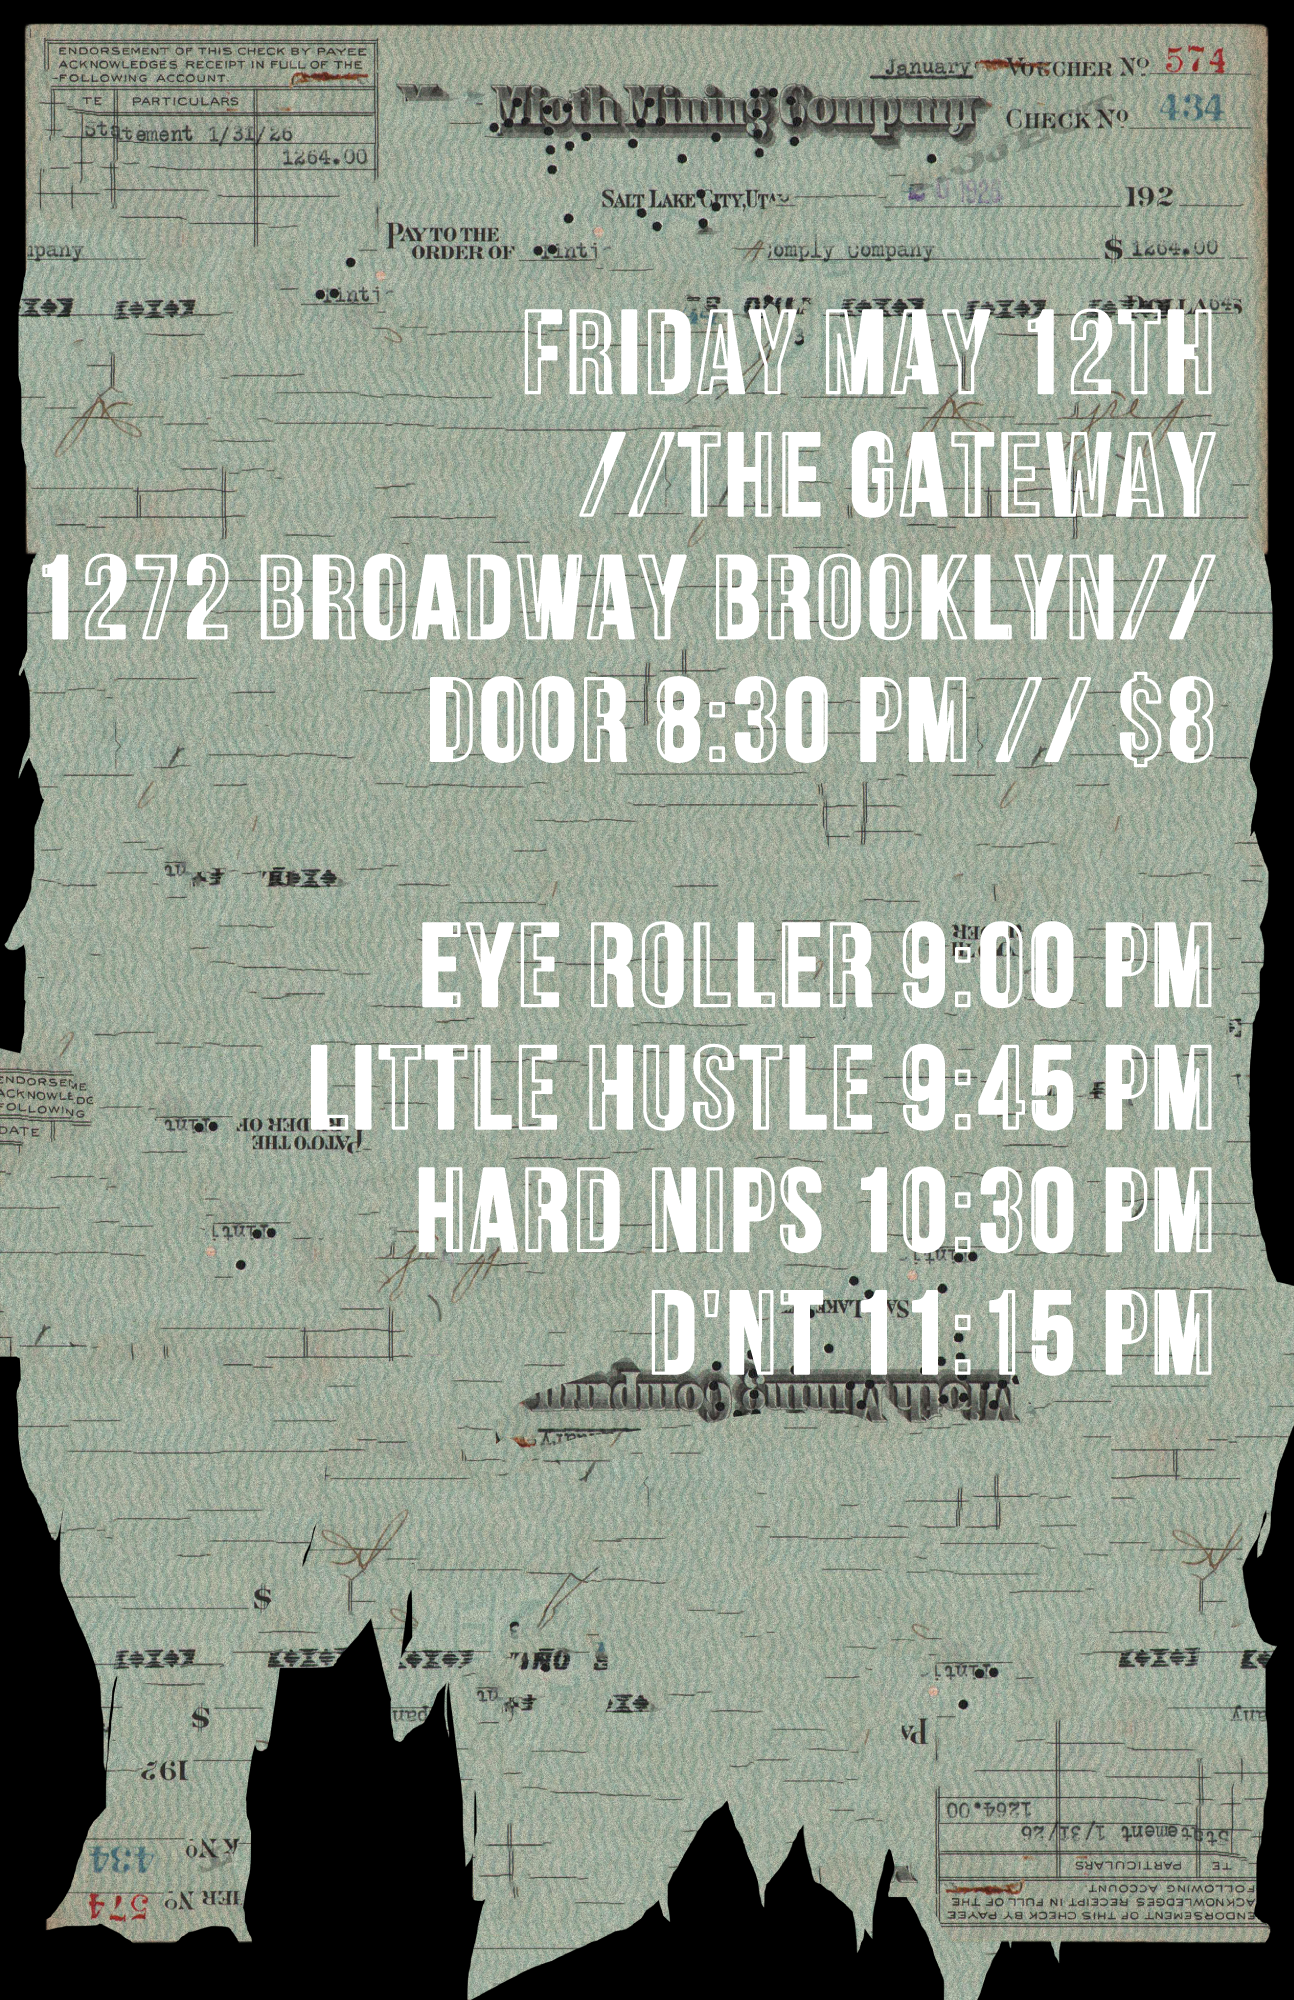 Gateway-5-12-17-content-aware-2k.png